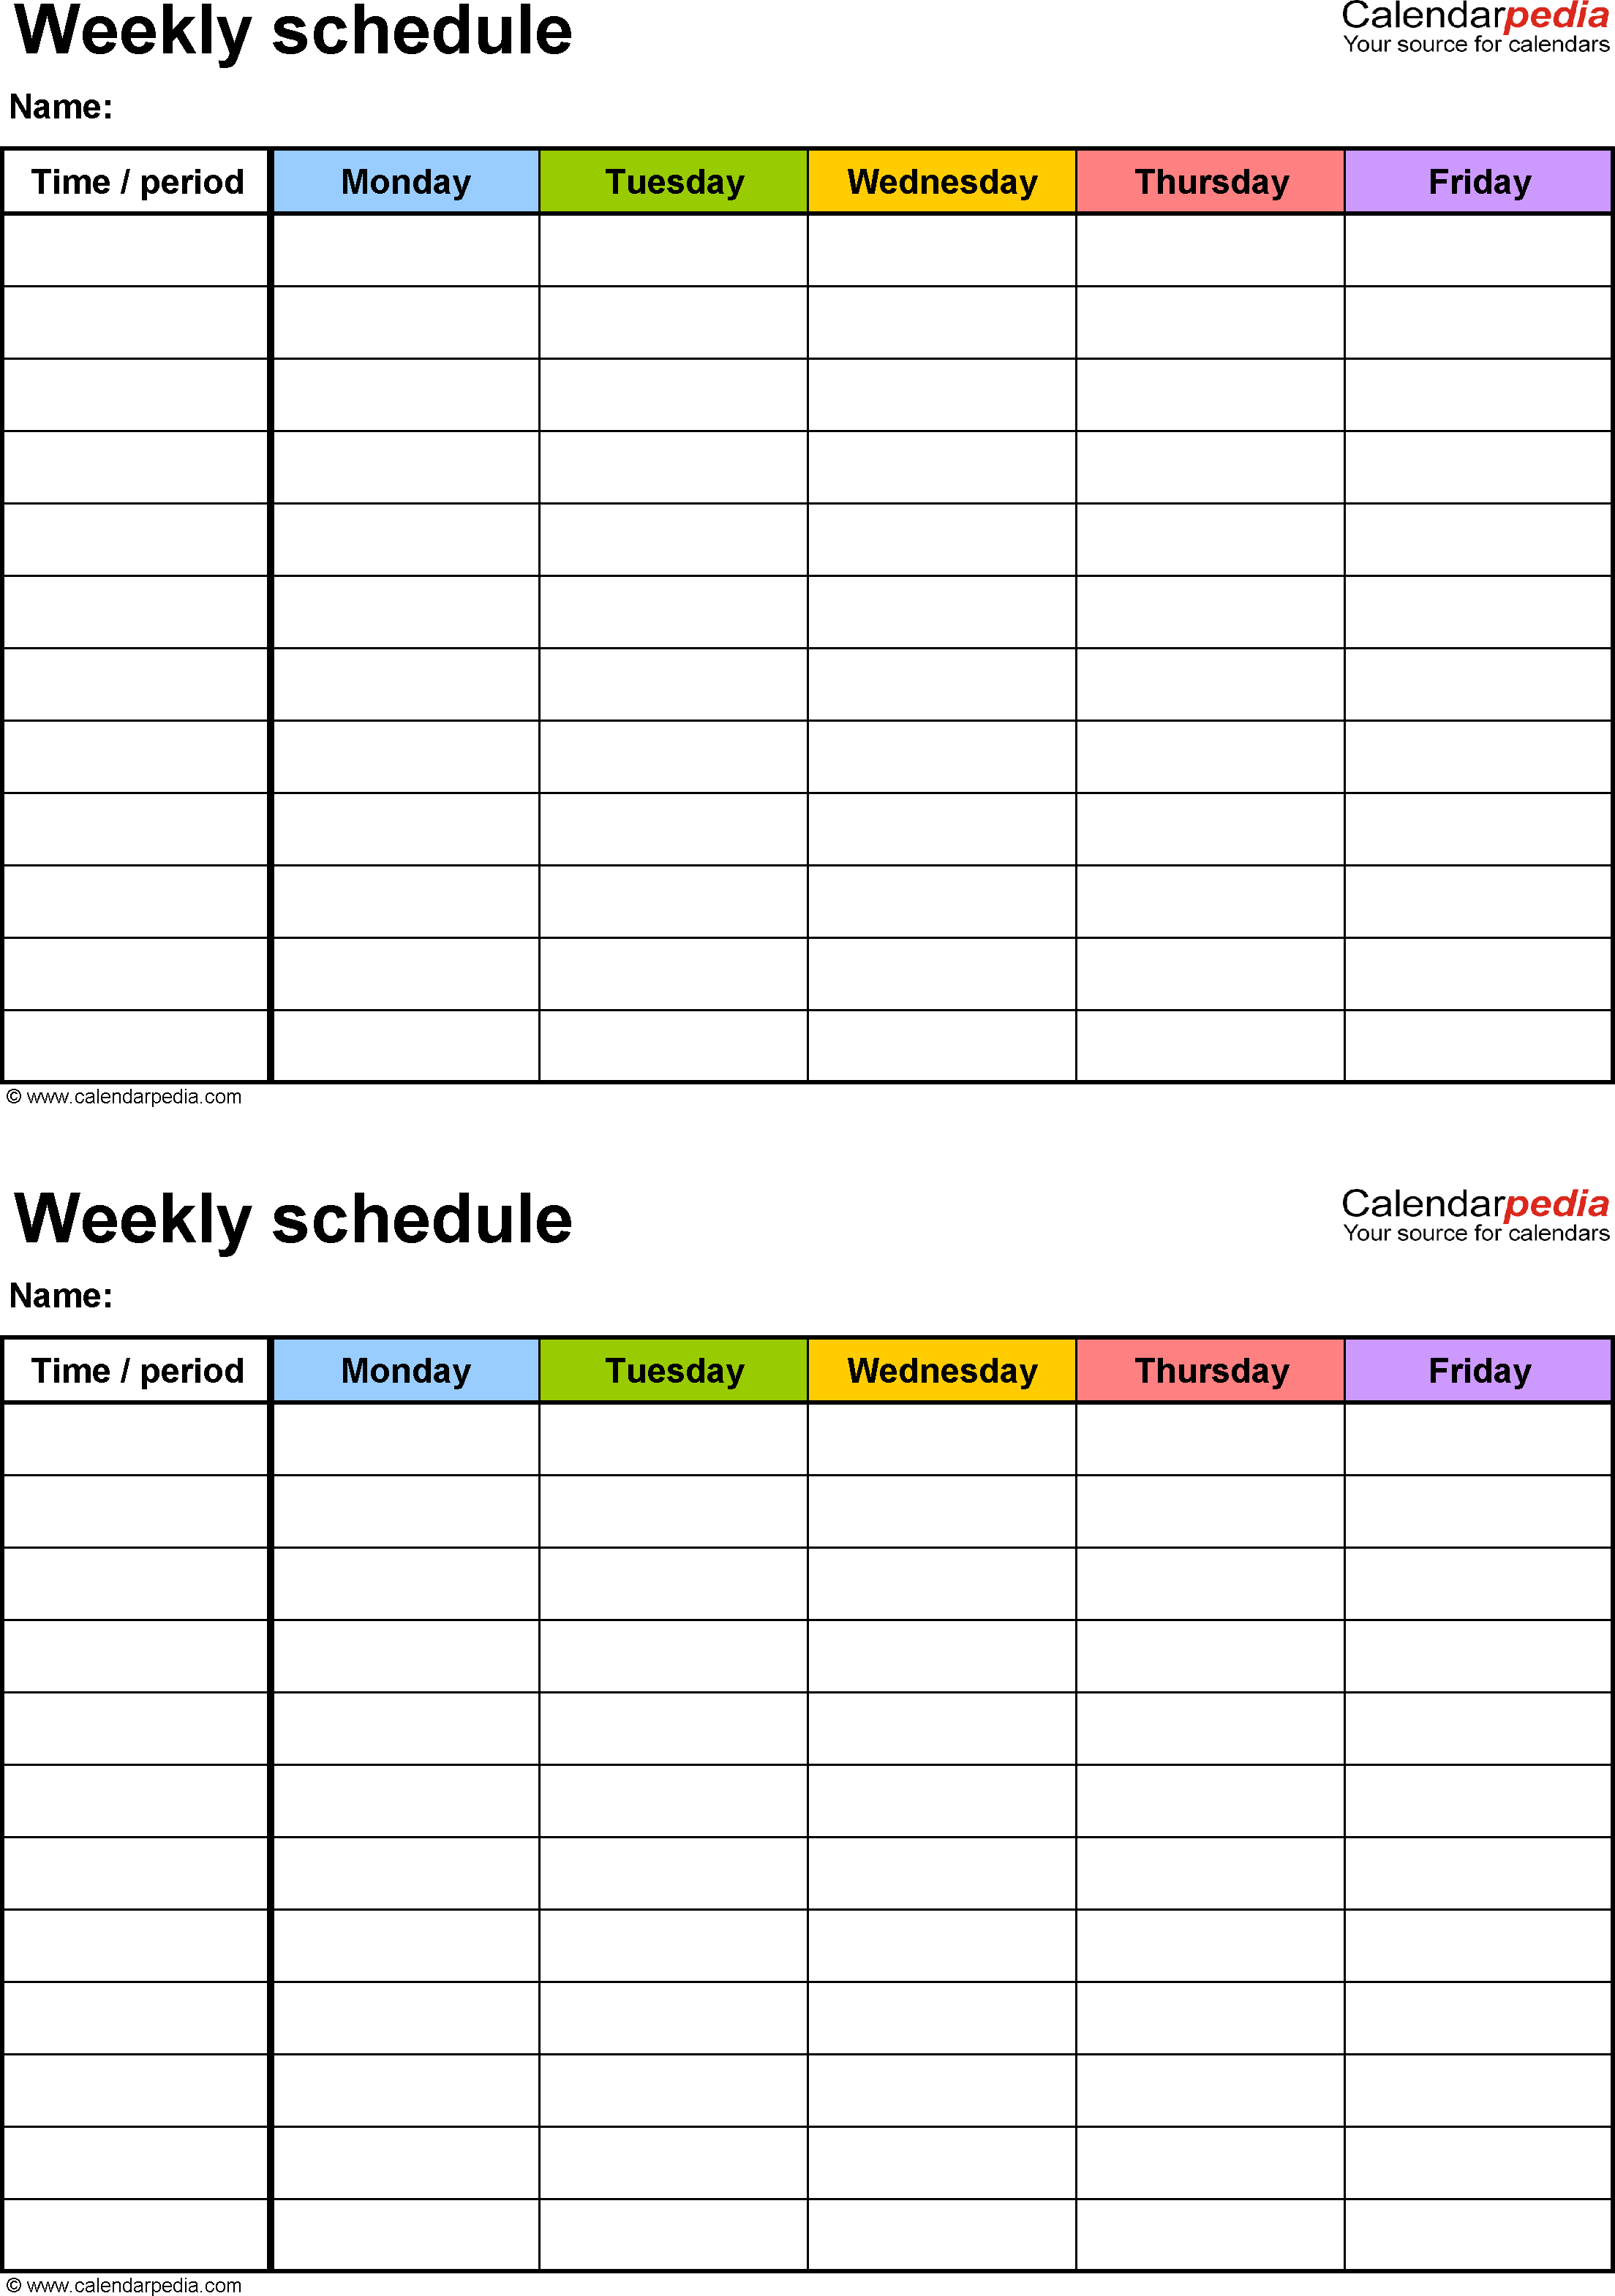 Free Weekly Schedule Templates For Word - 18 Templates inside Online Work Schedule Template Word